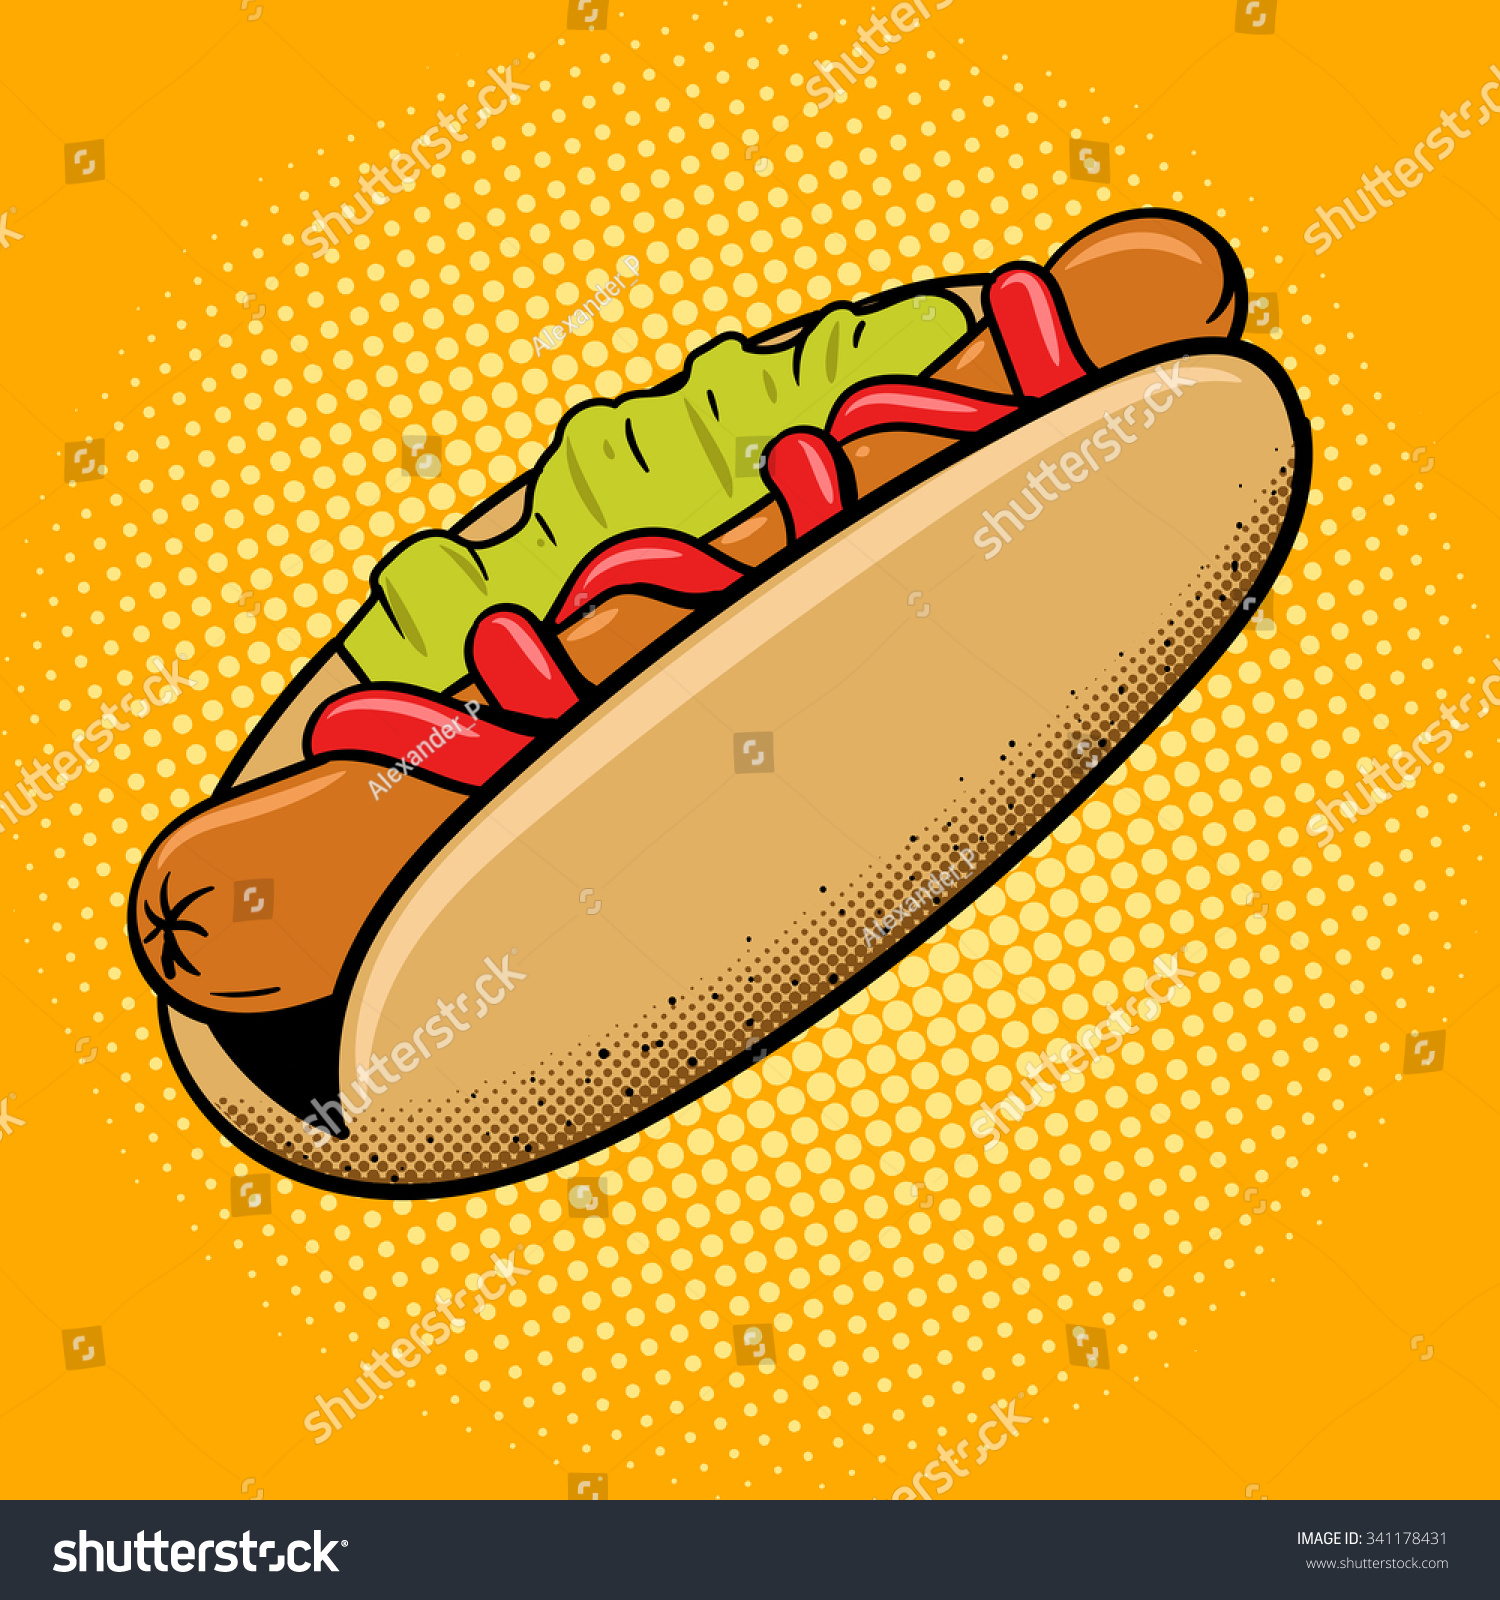 Hot dog fast food pop art style vector illustration Comic book style imitation